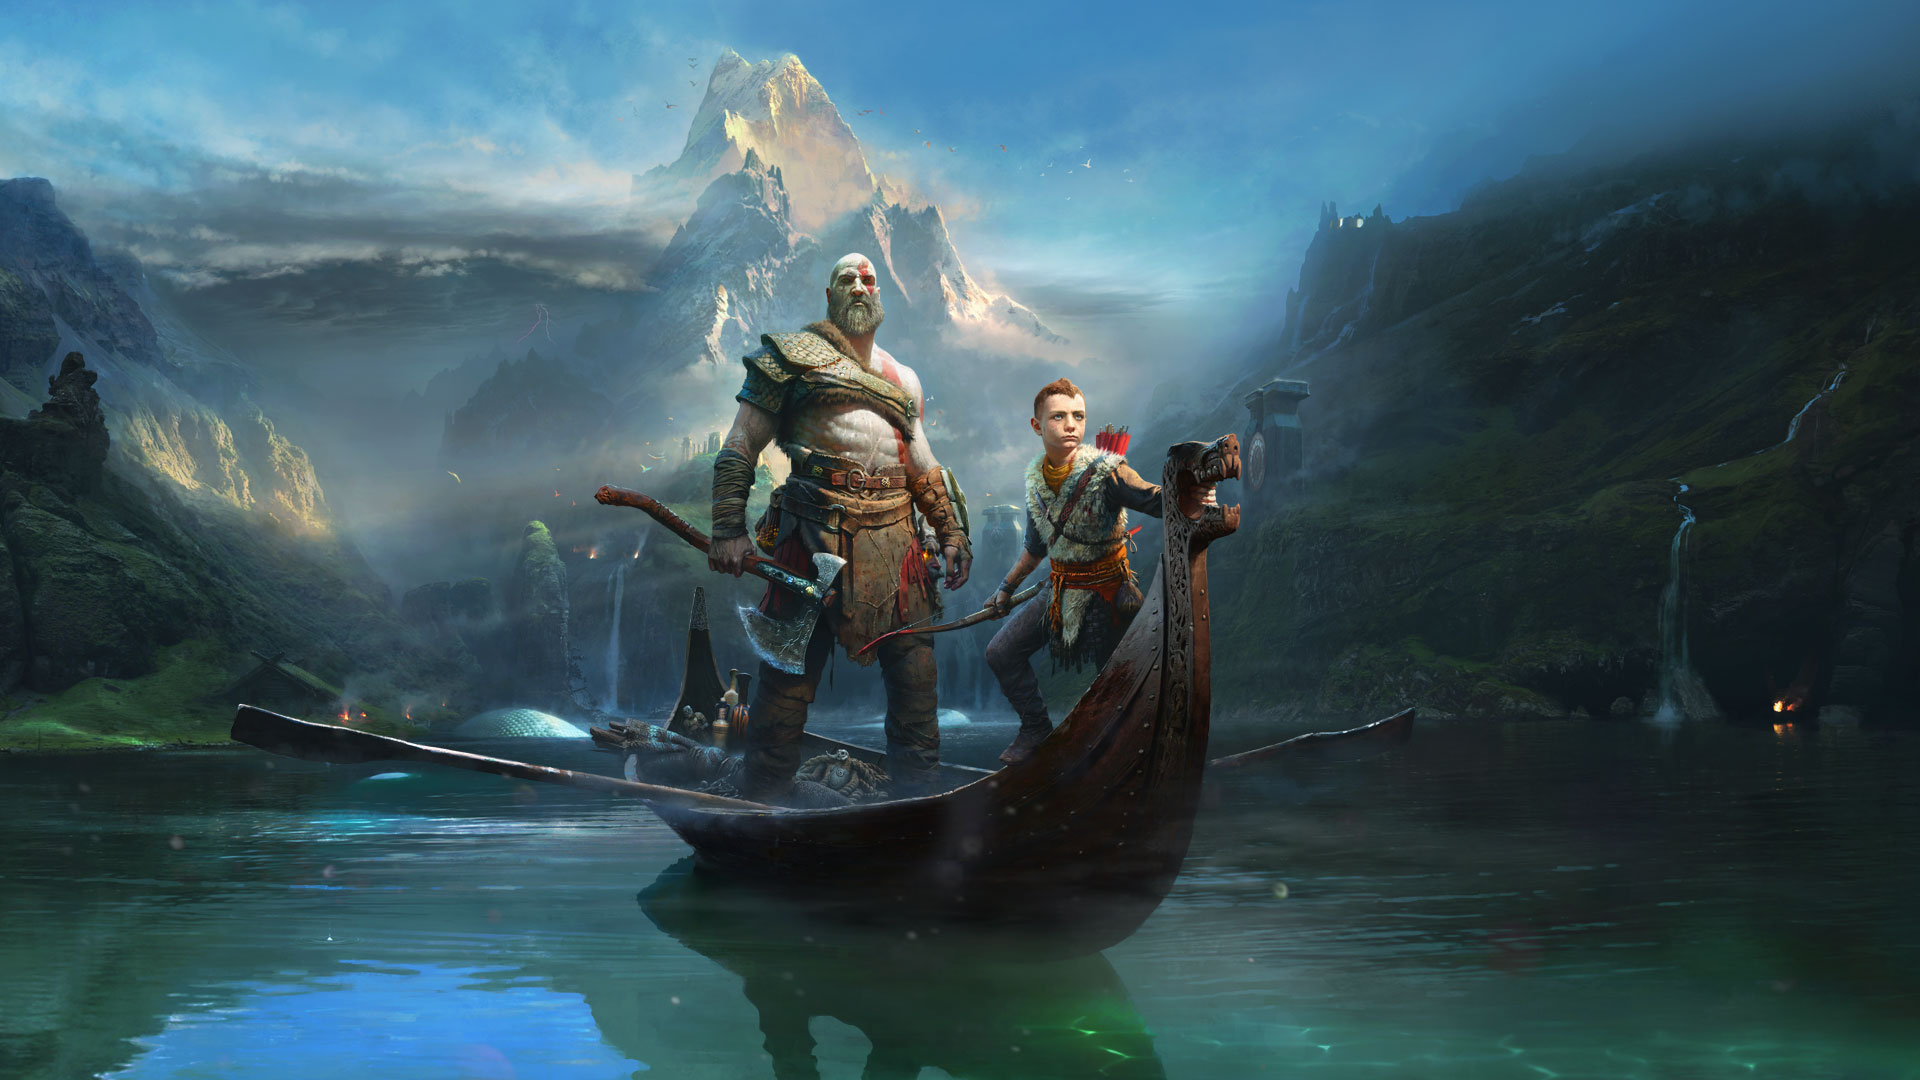 God of War recenzija – Otac i sin